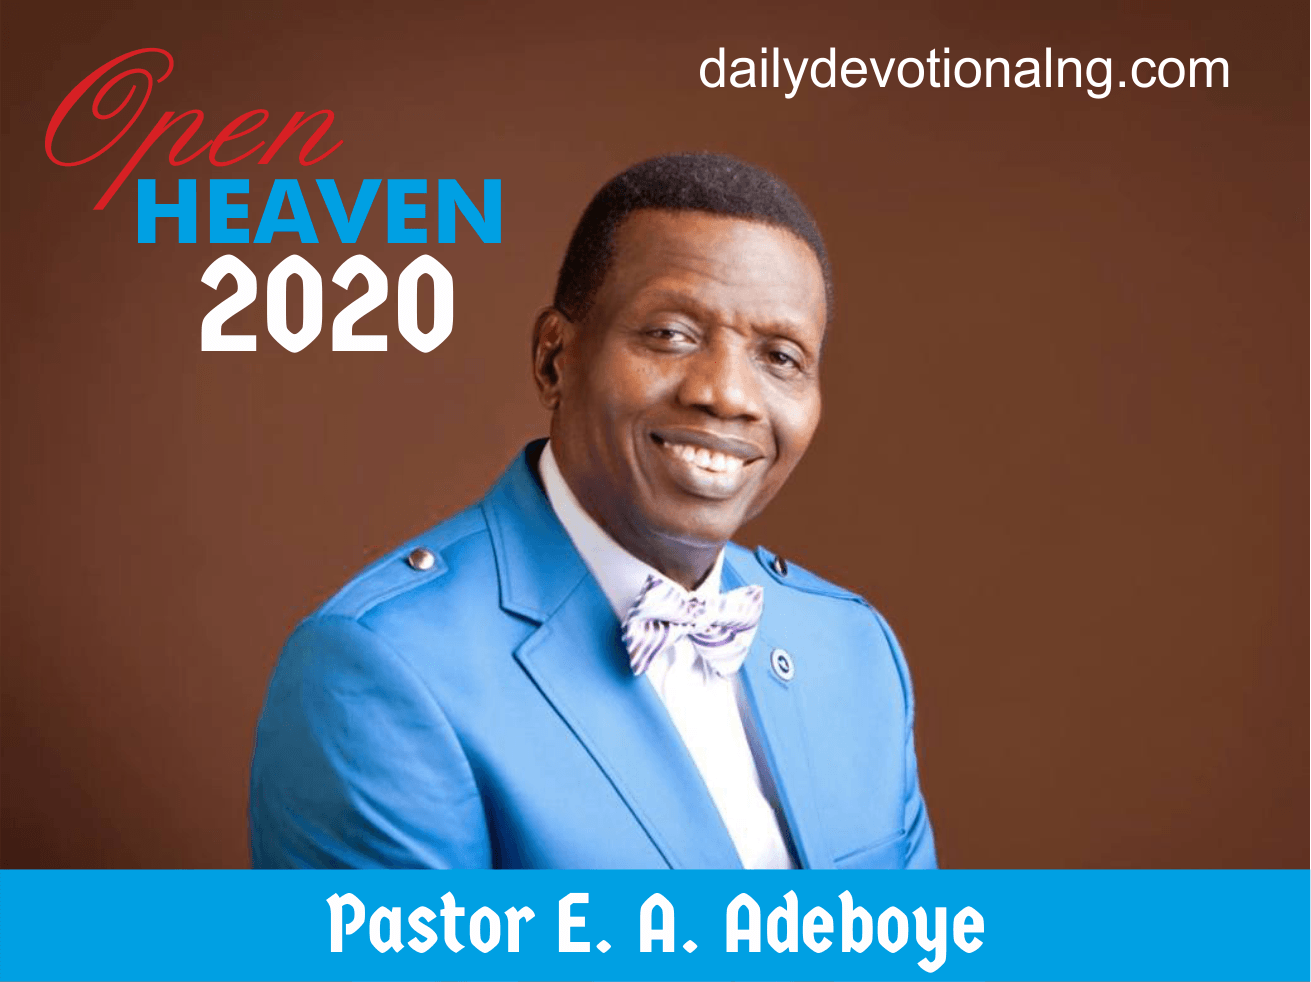 Open Heaven 19th October 2020 Devotional, Open Heaven 19th October 2020 Devotional – Overcoming Destiny – Threatening Enemies, Latest Nigeria News, Daily Devotionals & Celebrity Gossips - Chidispalace